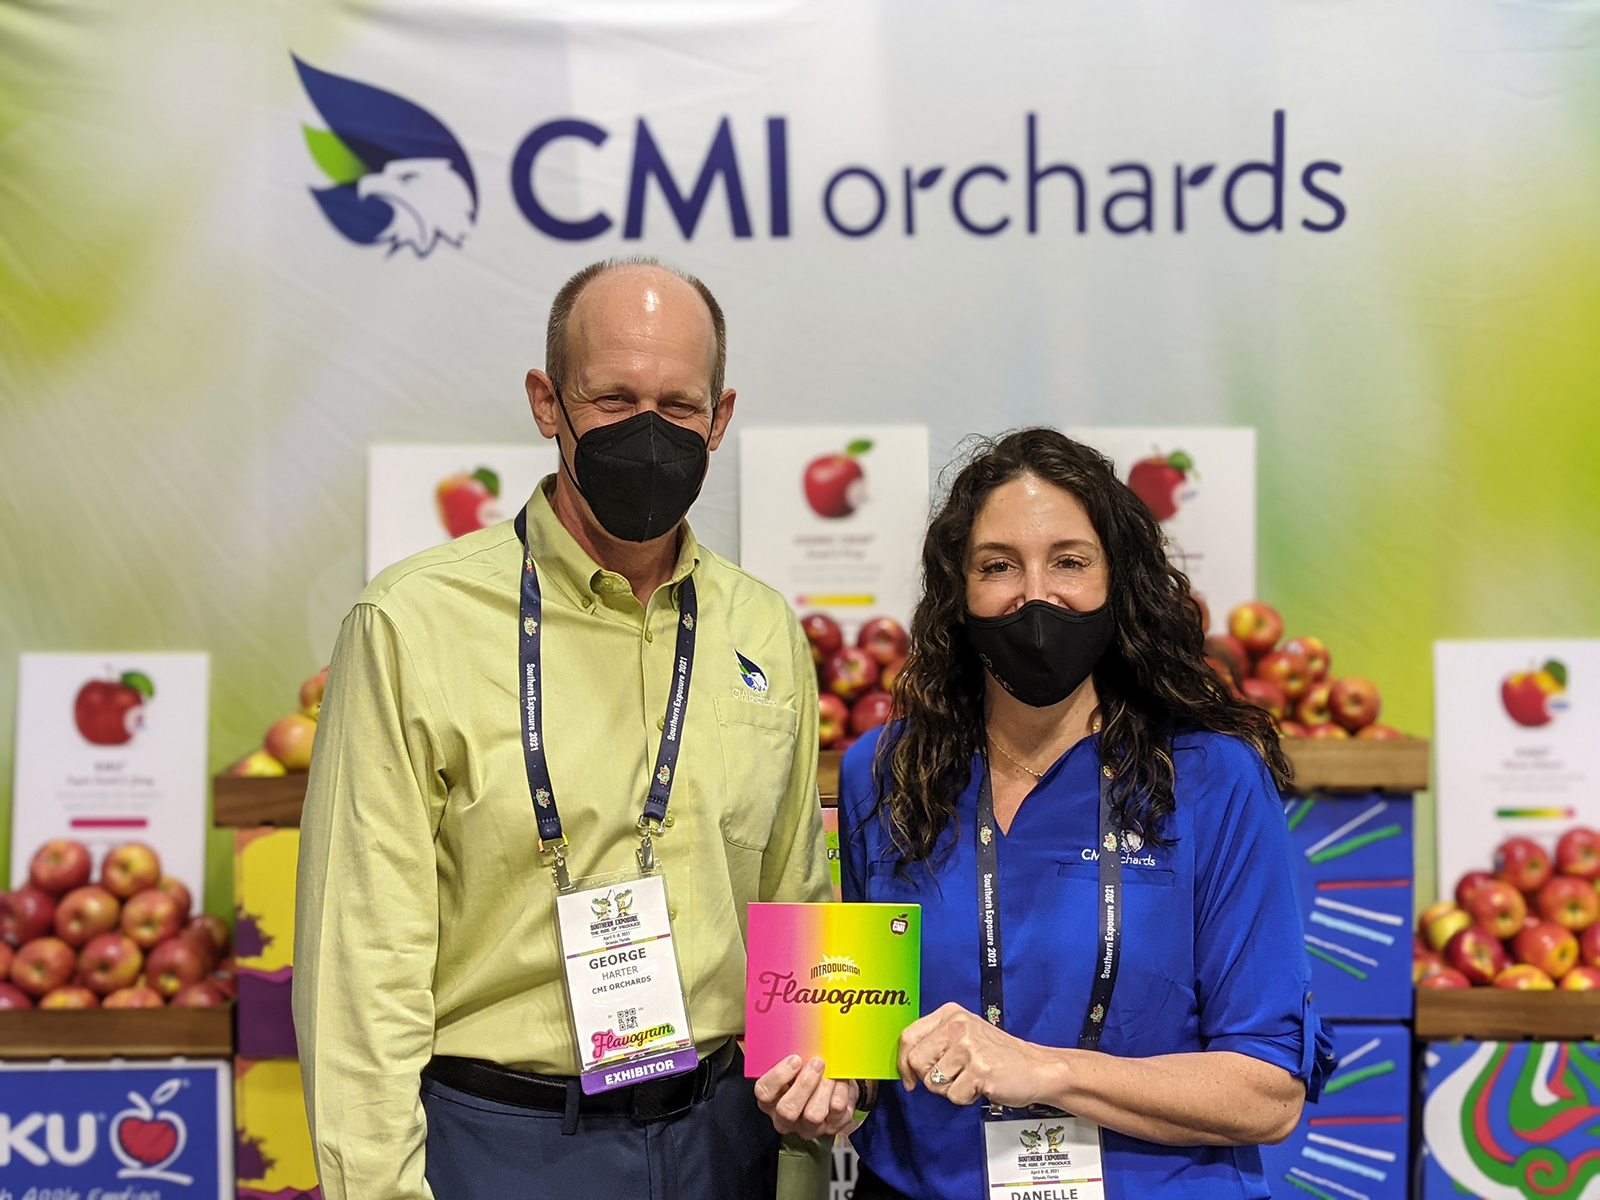 George Harter and Danelle Huber of CMI Orchards.